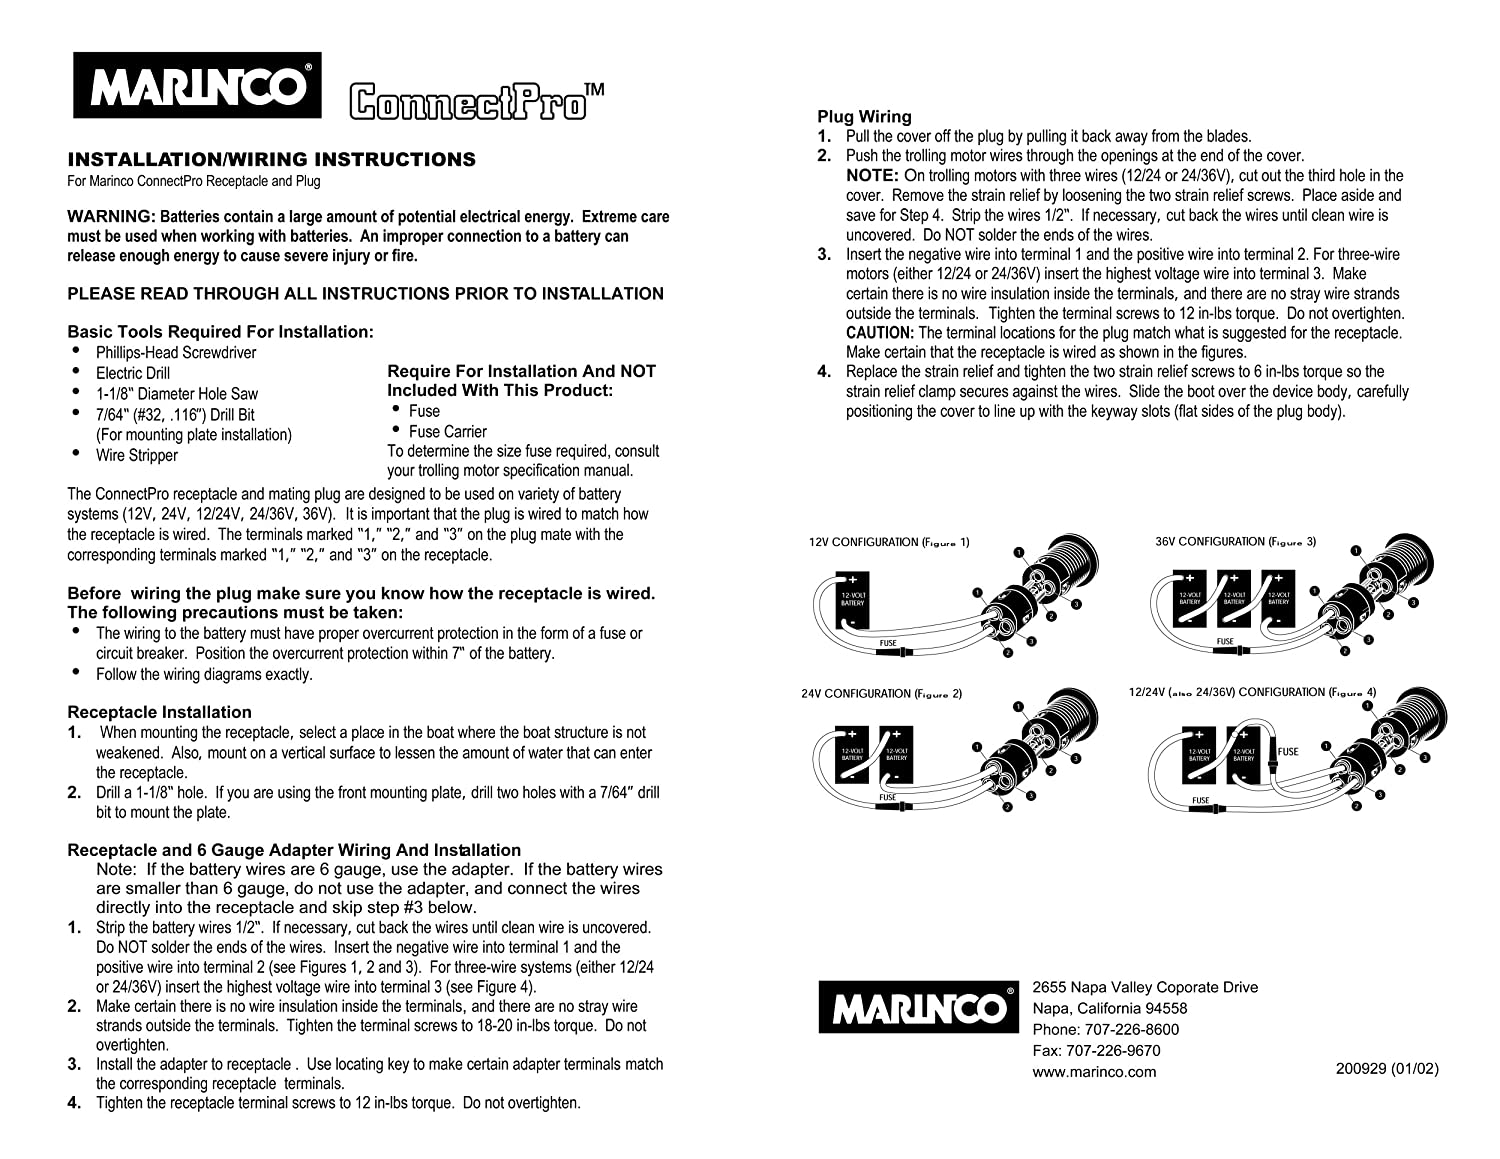 91ULQH2Yk6S._SL1500_ amazon com marinco 2 wire connectpro plug sports & outdoors 12v accessory socket wiring diagram at suagrazia.org